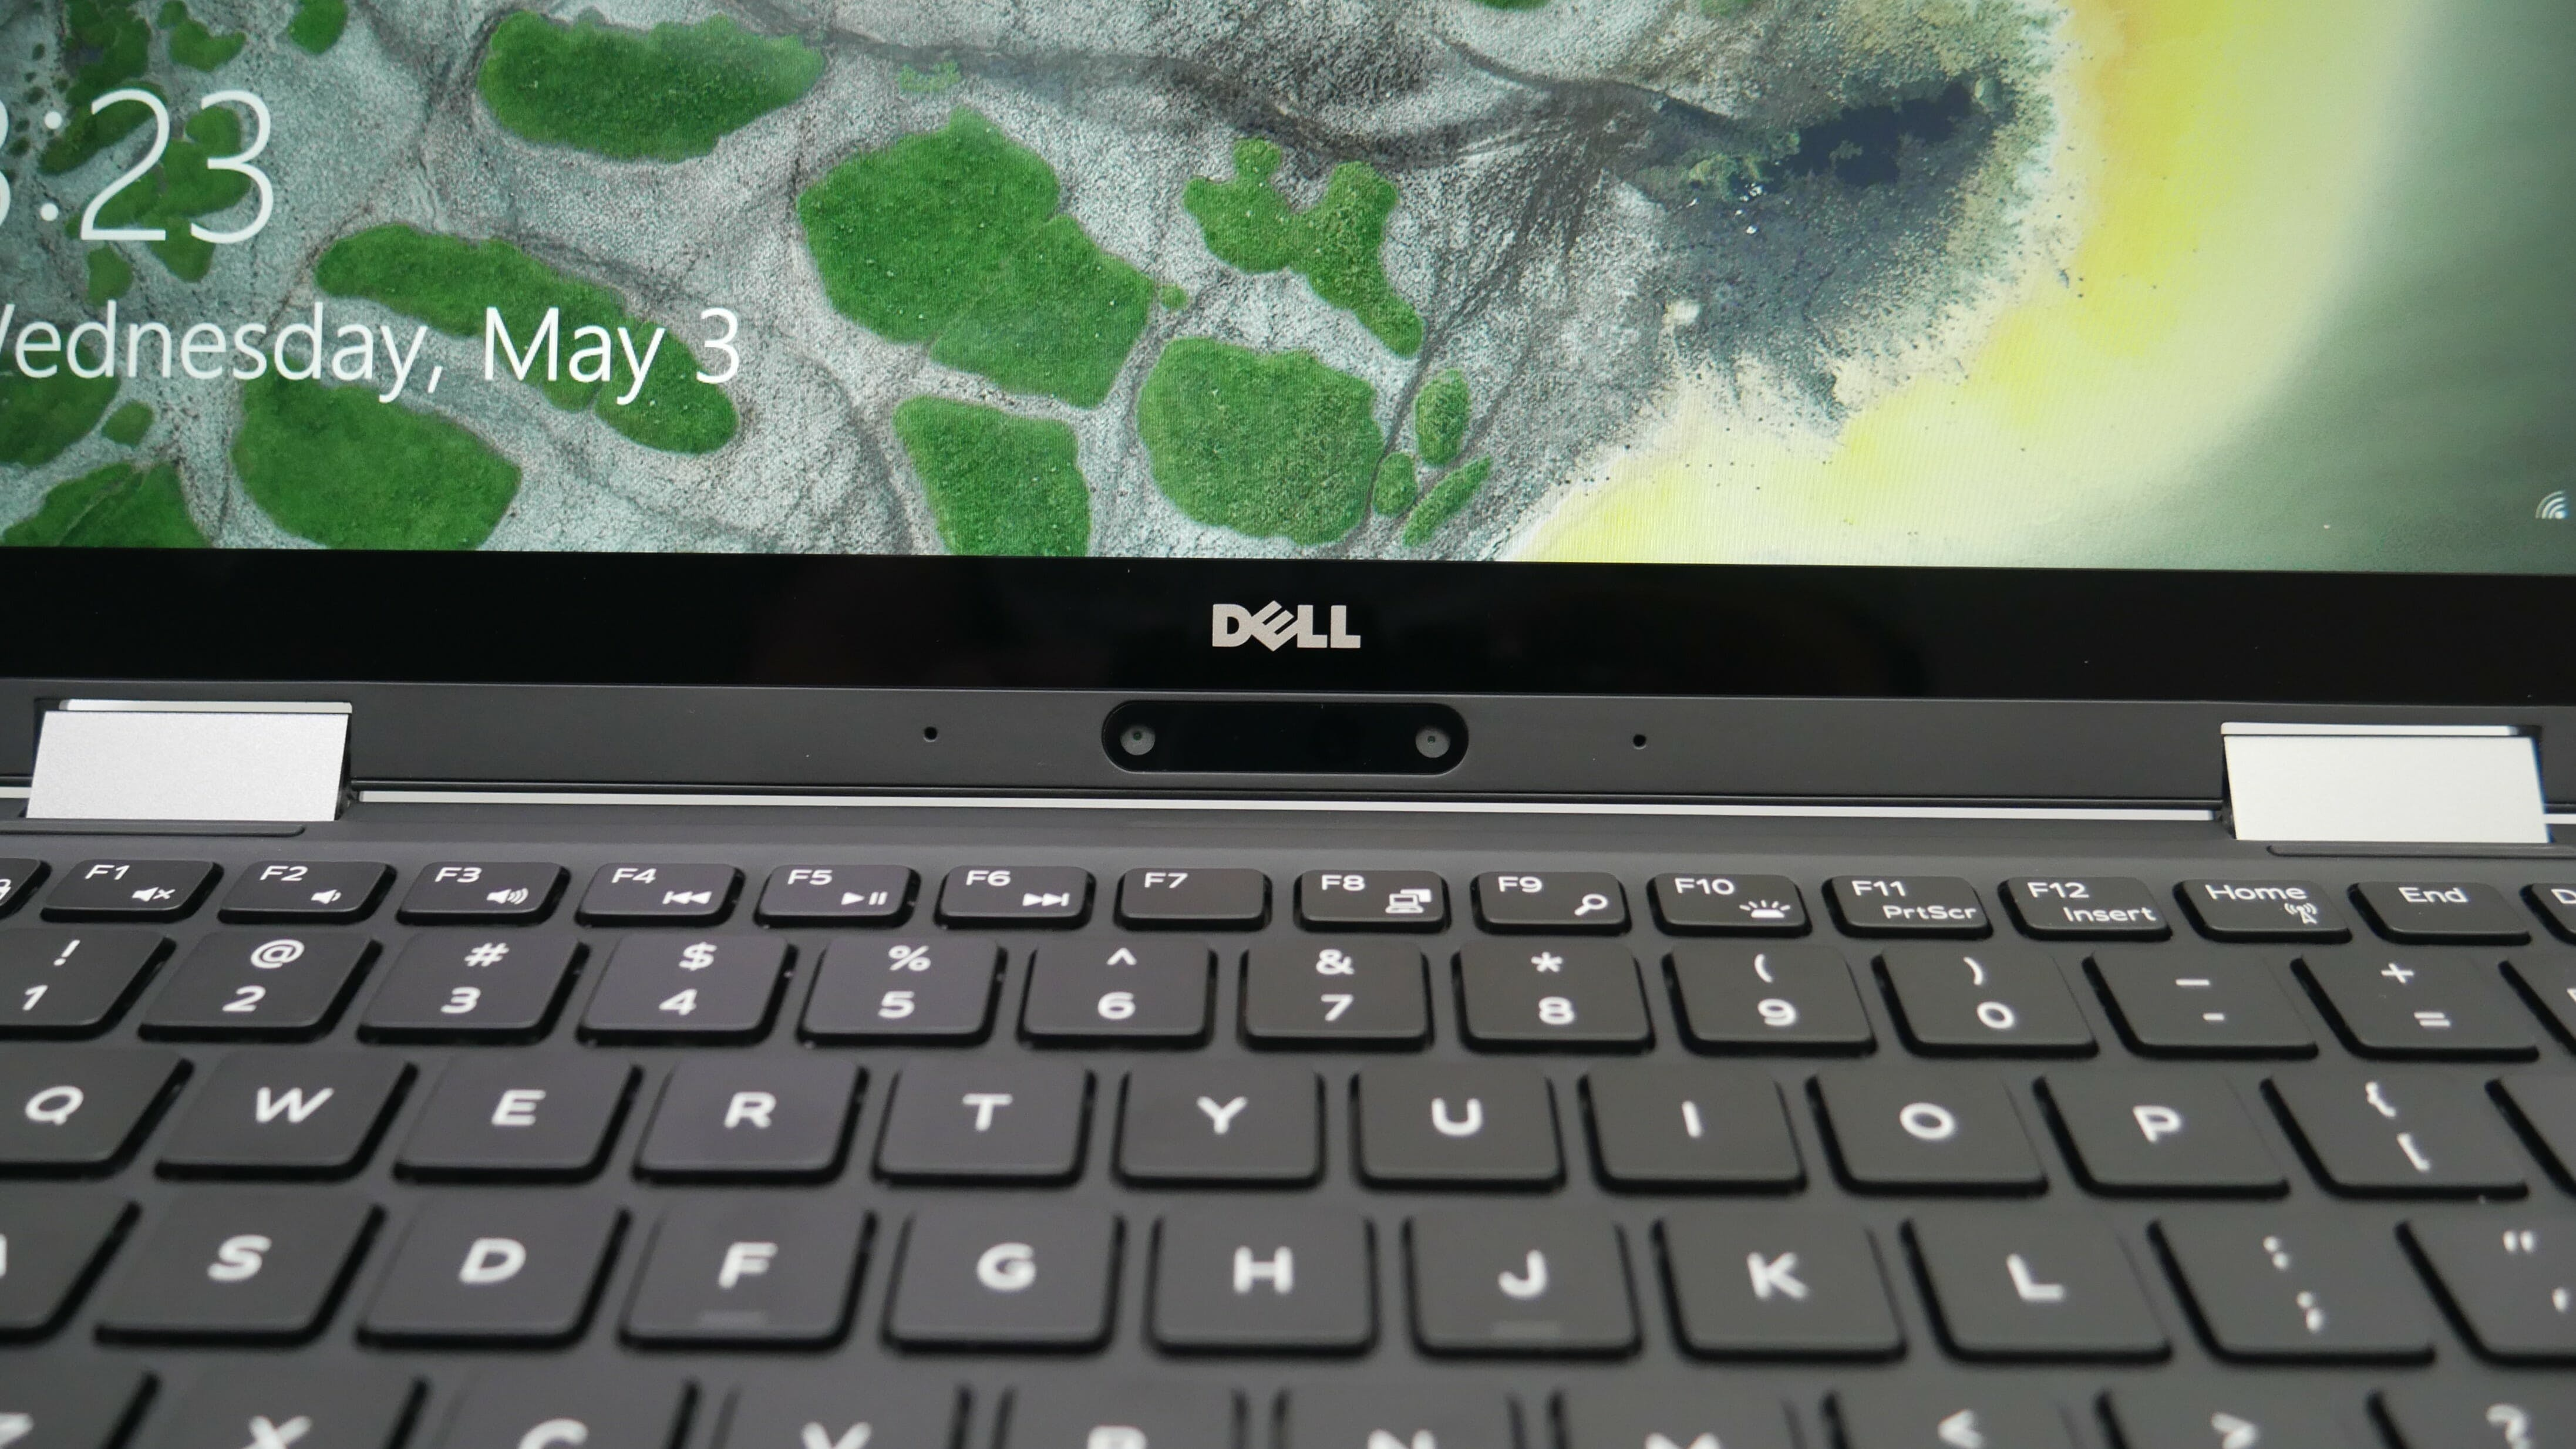 dell xps 13 2-in-1 web camera placement